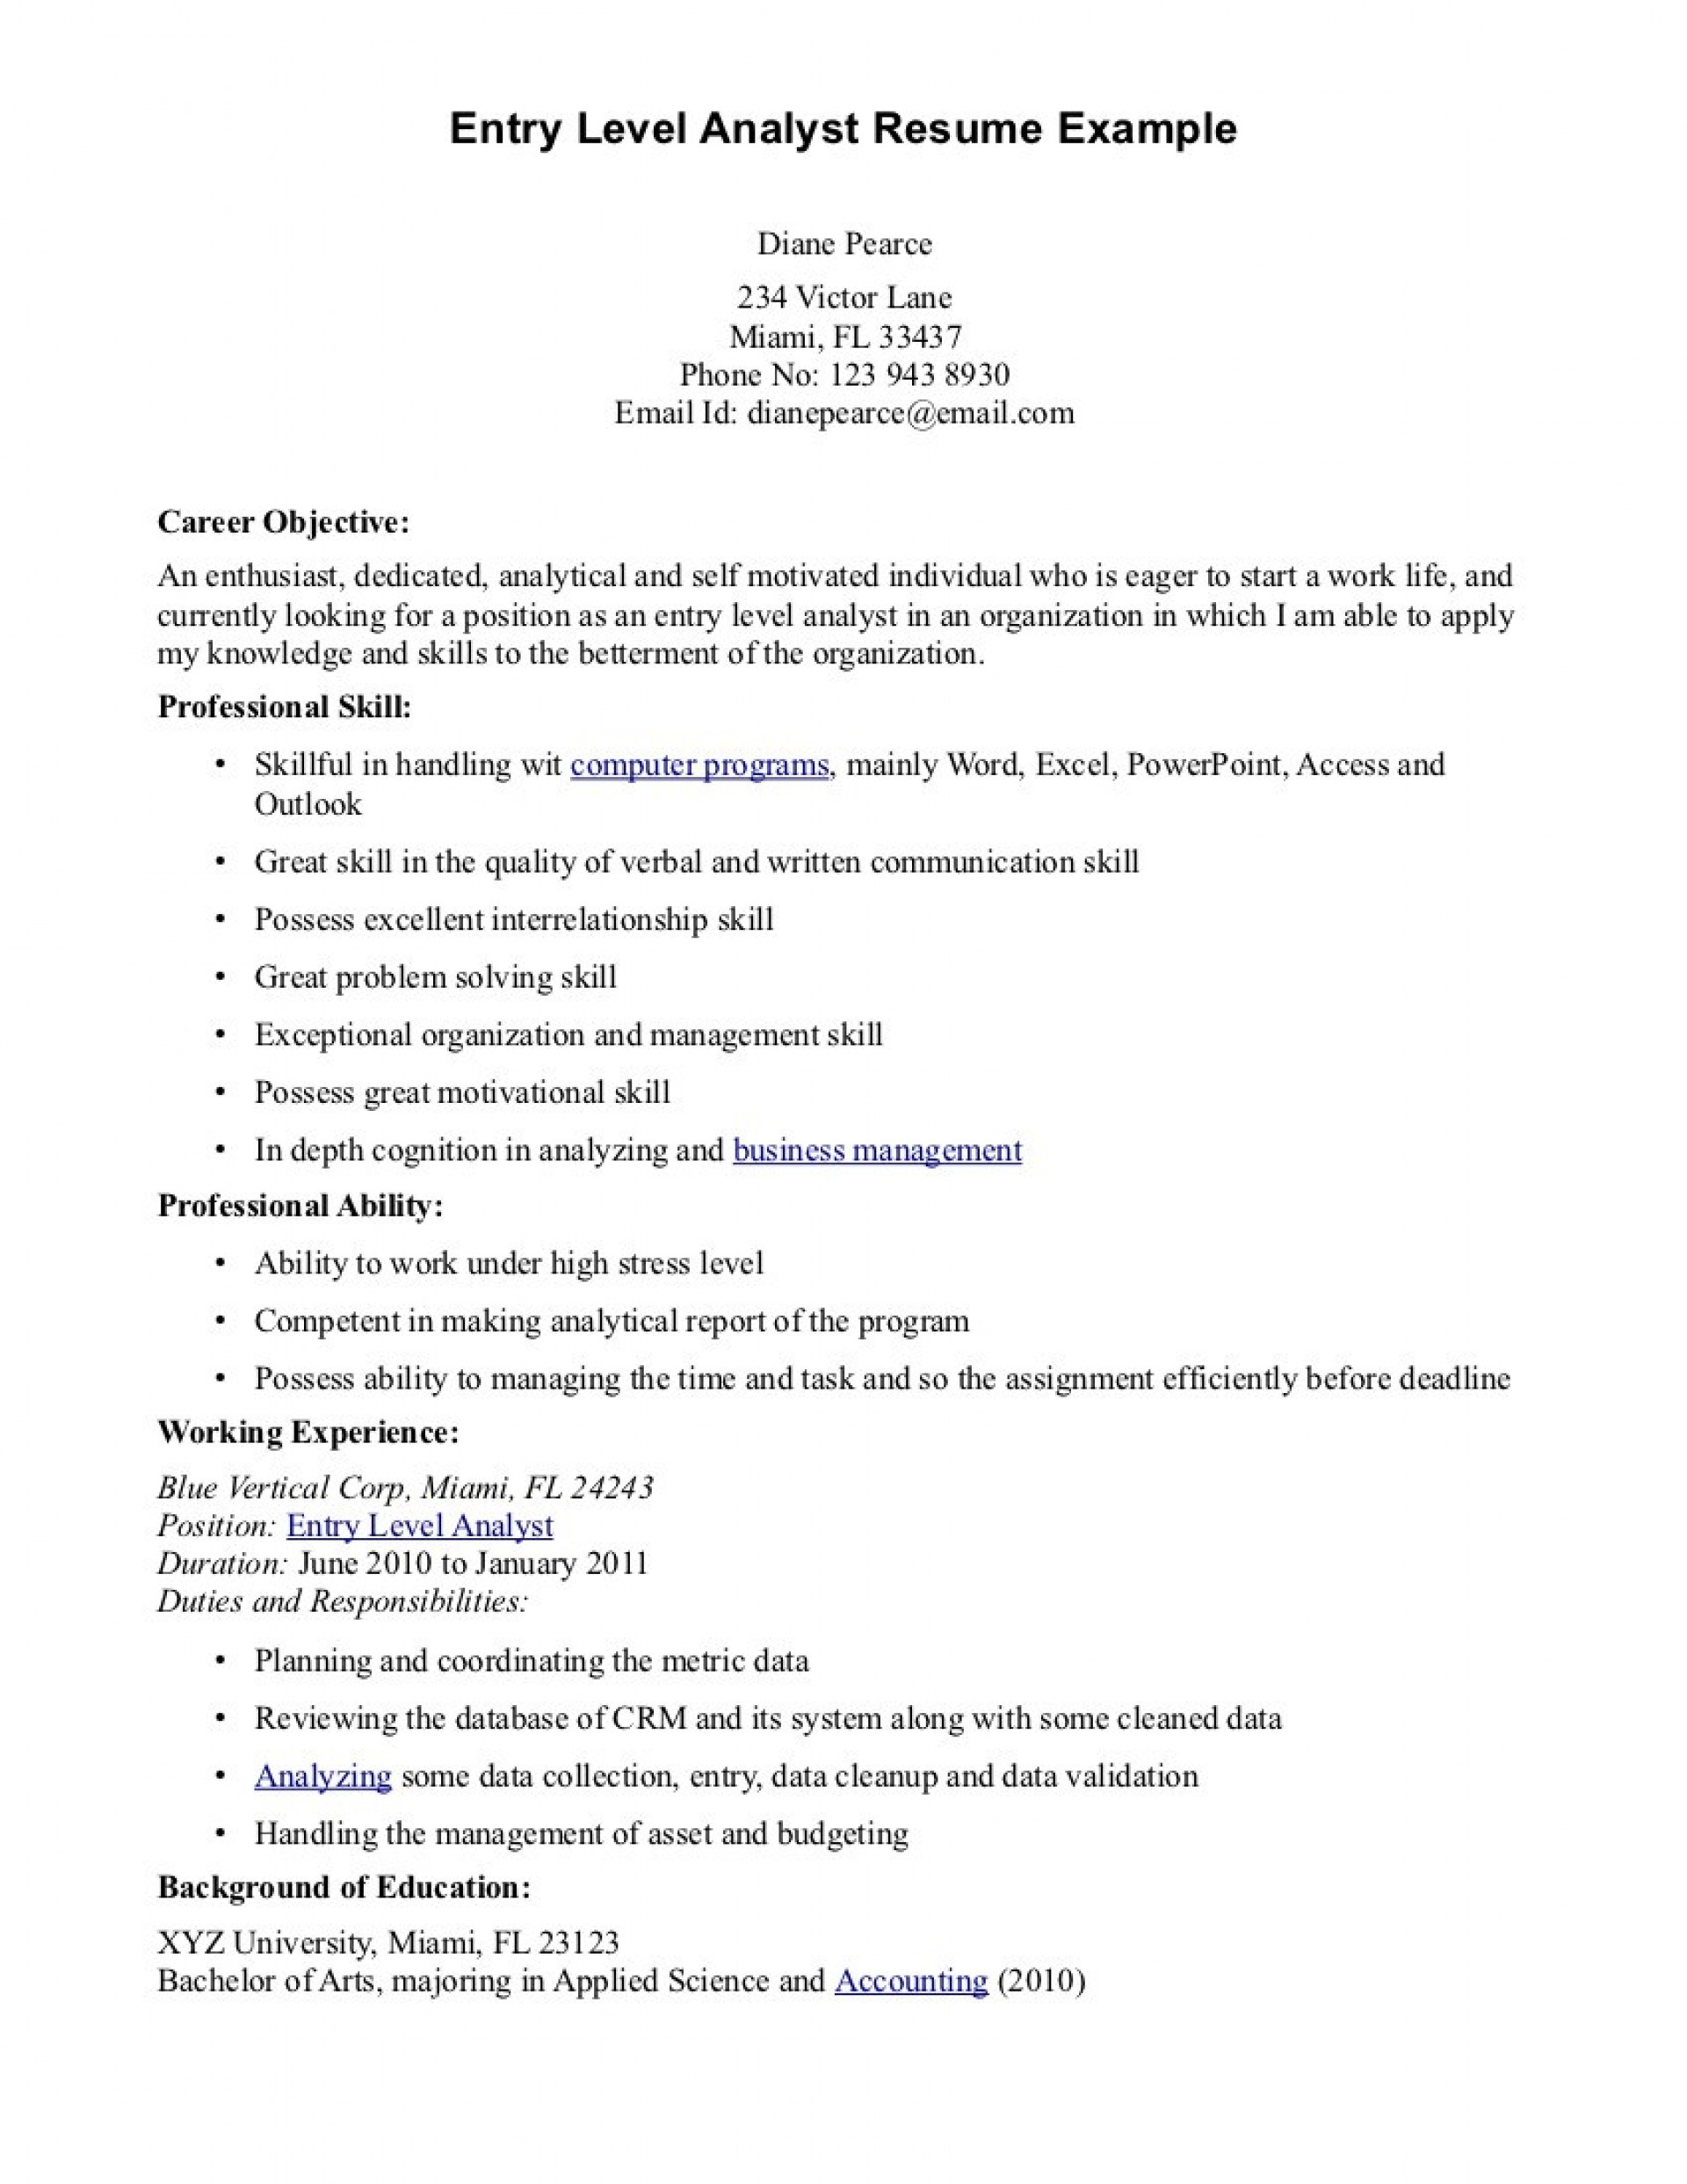 016 Cyber Security Research Paper Example Entry Level Resume Objective Examples Dreaded 1920